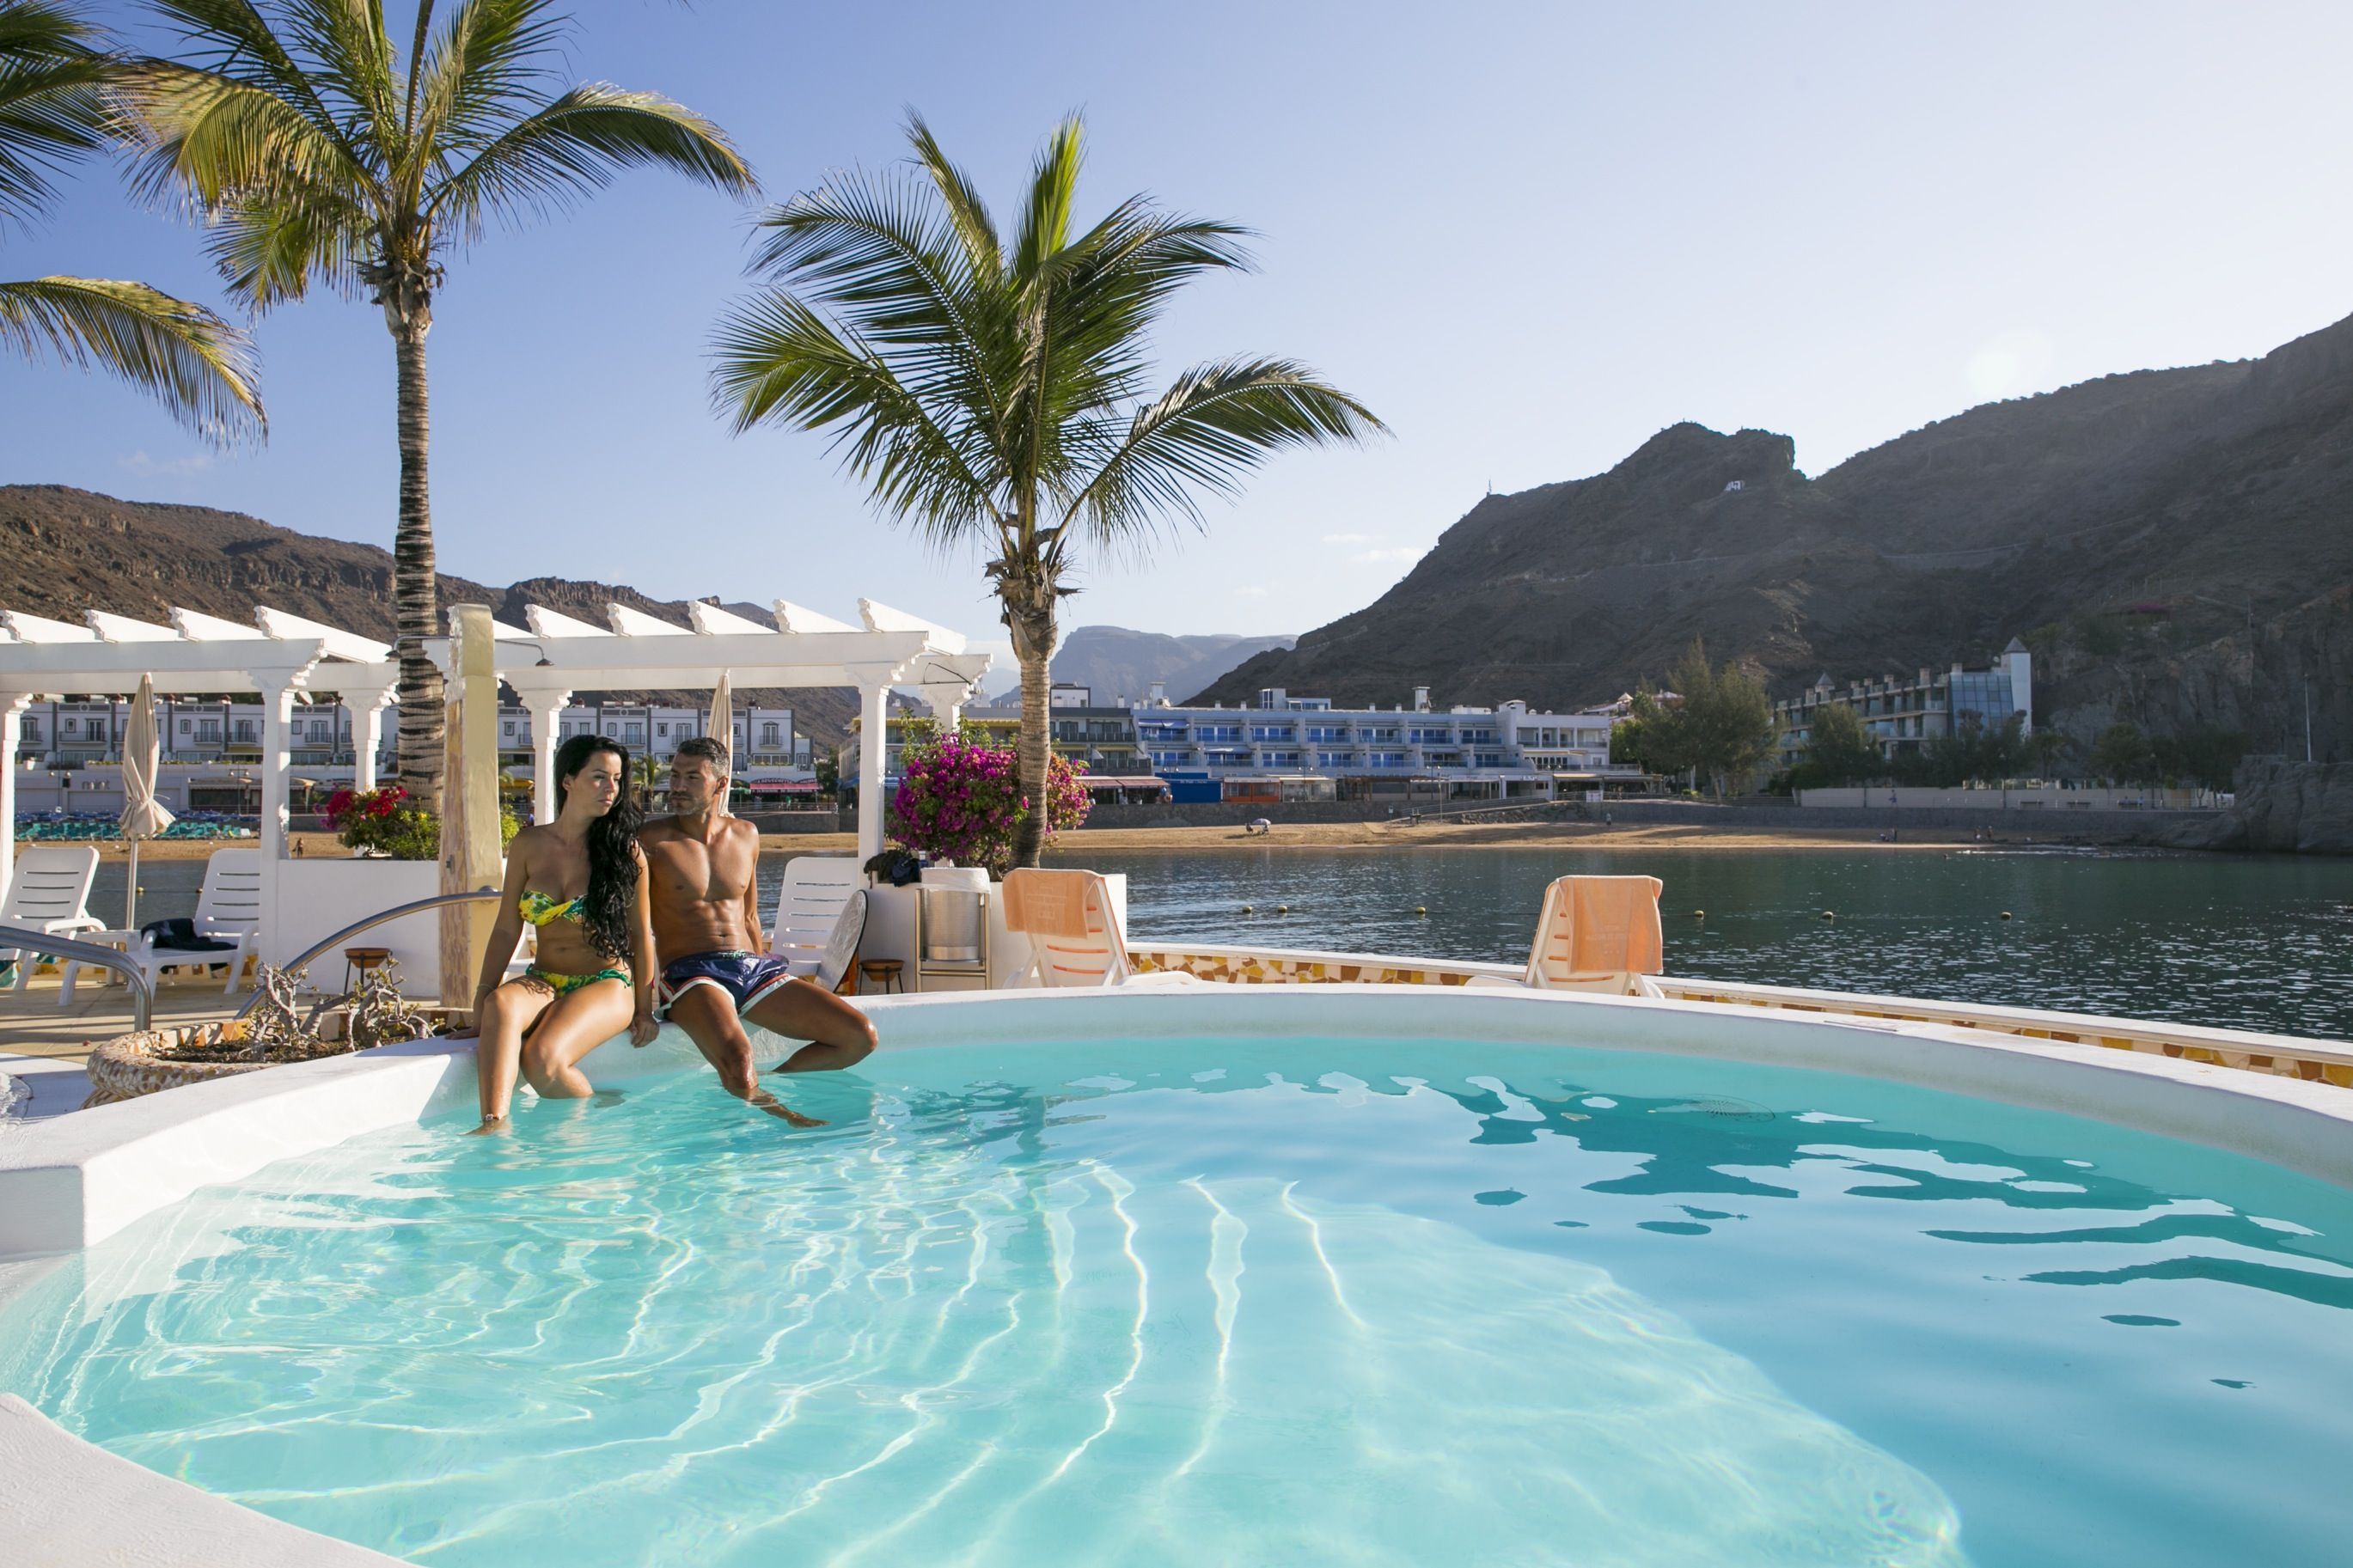 THe Hotel Puerto de Mogán swimming pool www.totalhotelexperience.com Gran Canaria, Canary islands. Spain